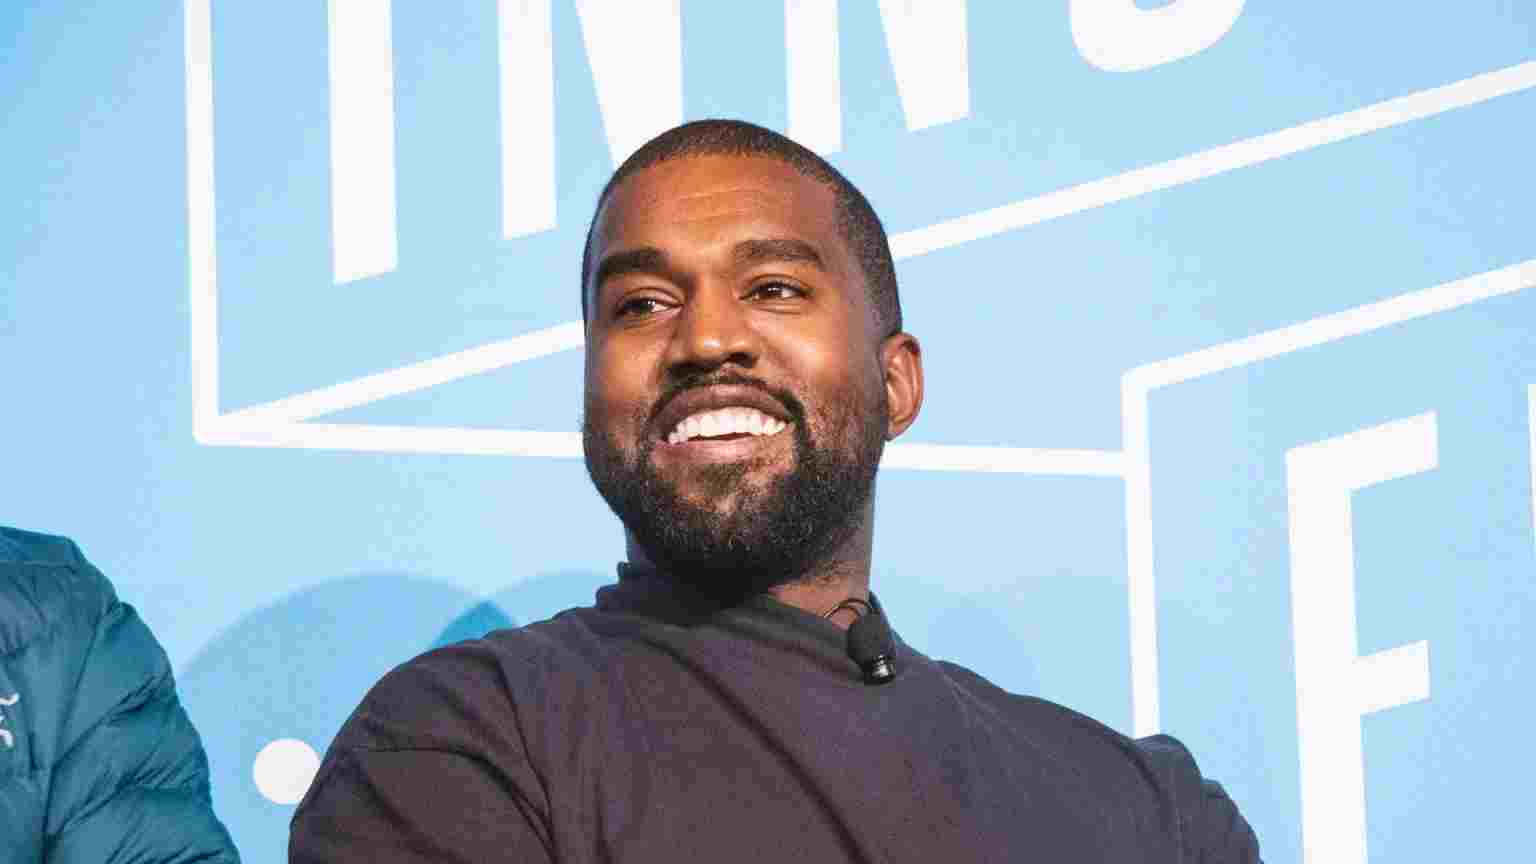 Rapper, Kanye West named wealthiest black man in America with $6.6 billion net worth